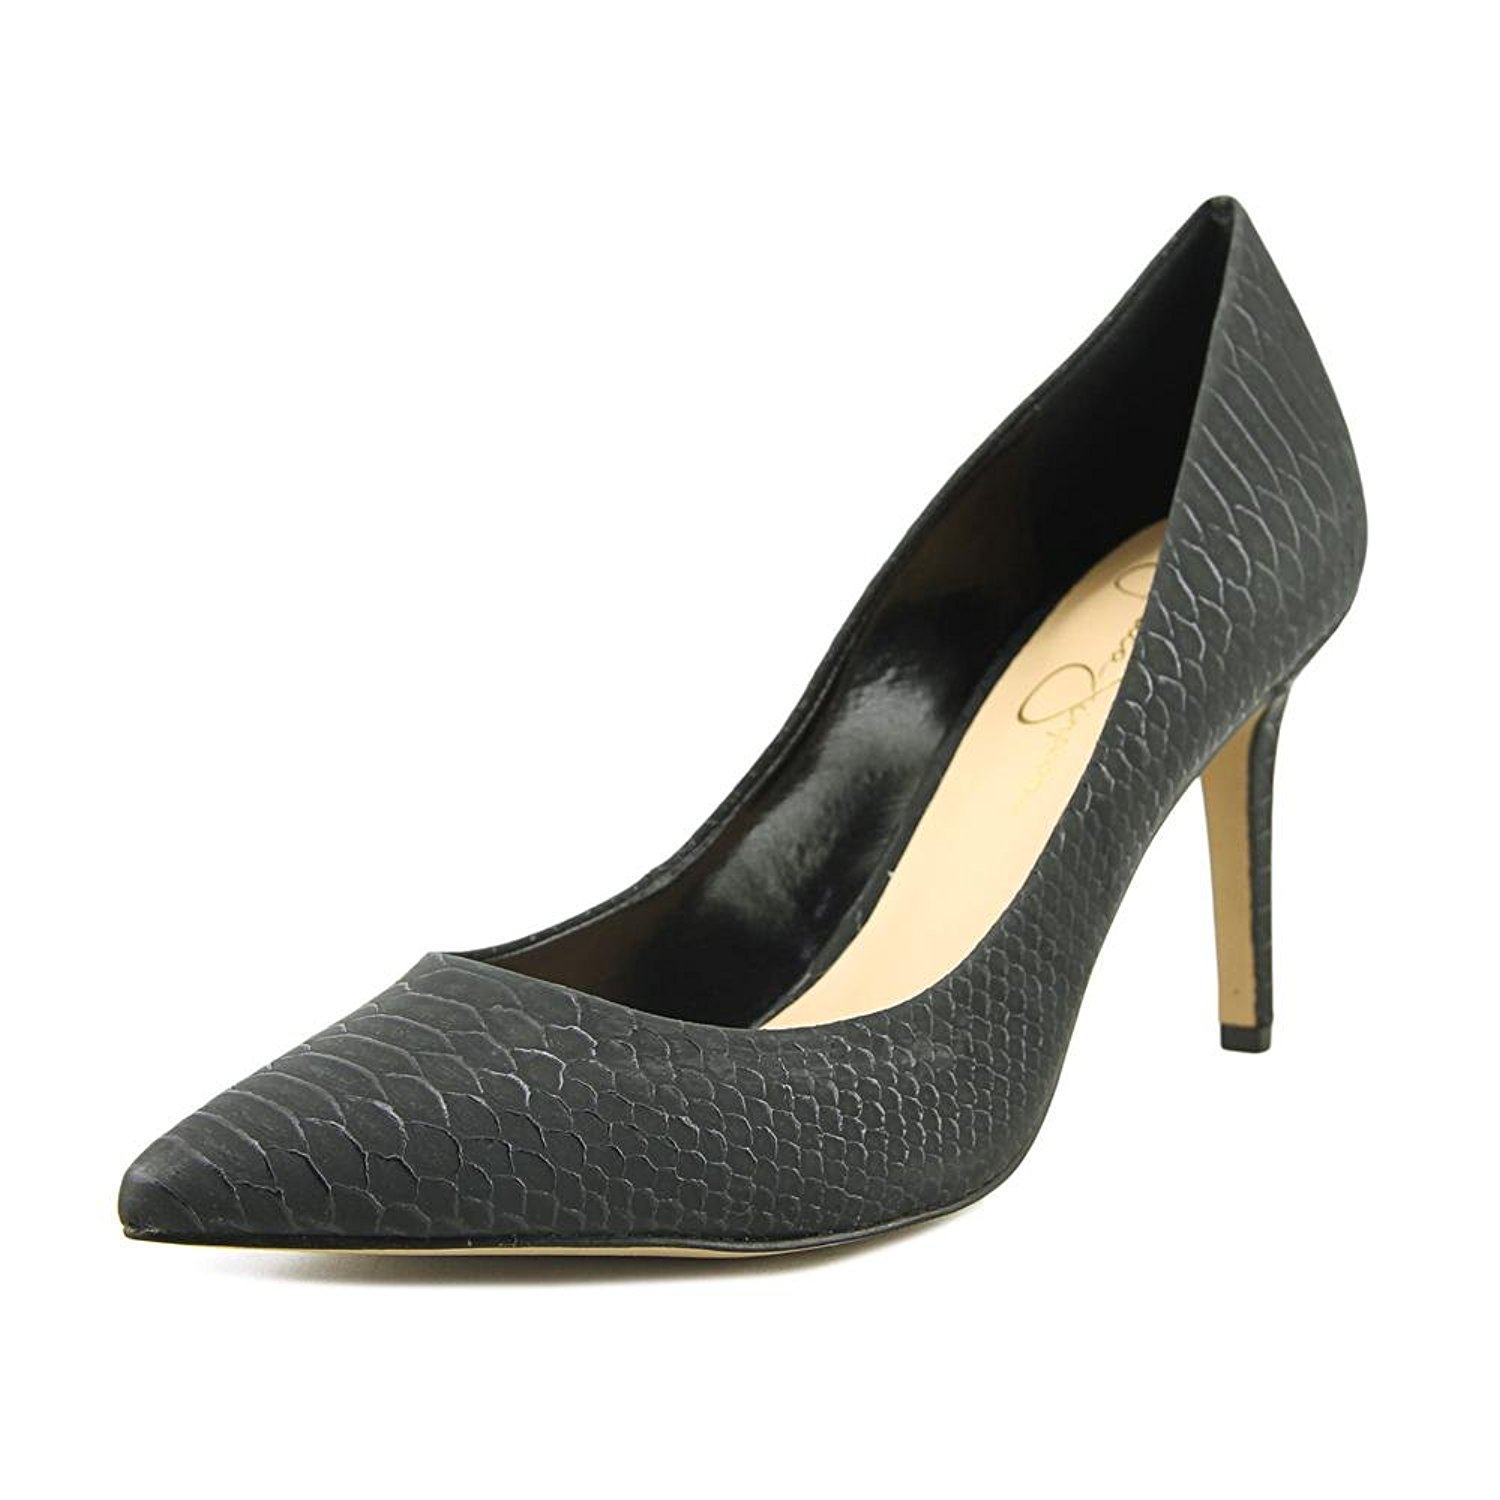 b7106f27afd Jessica Simpson Womens Levin Pointed Toe Classic Pumps